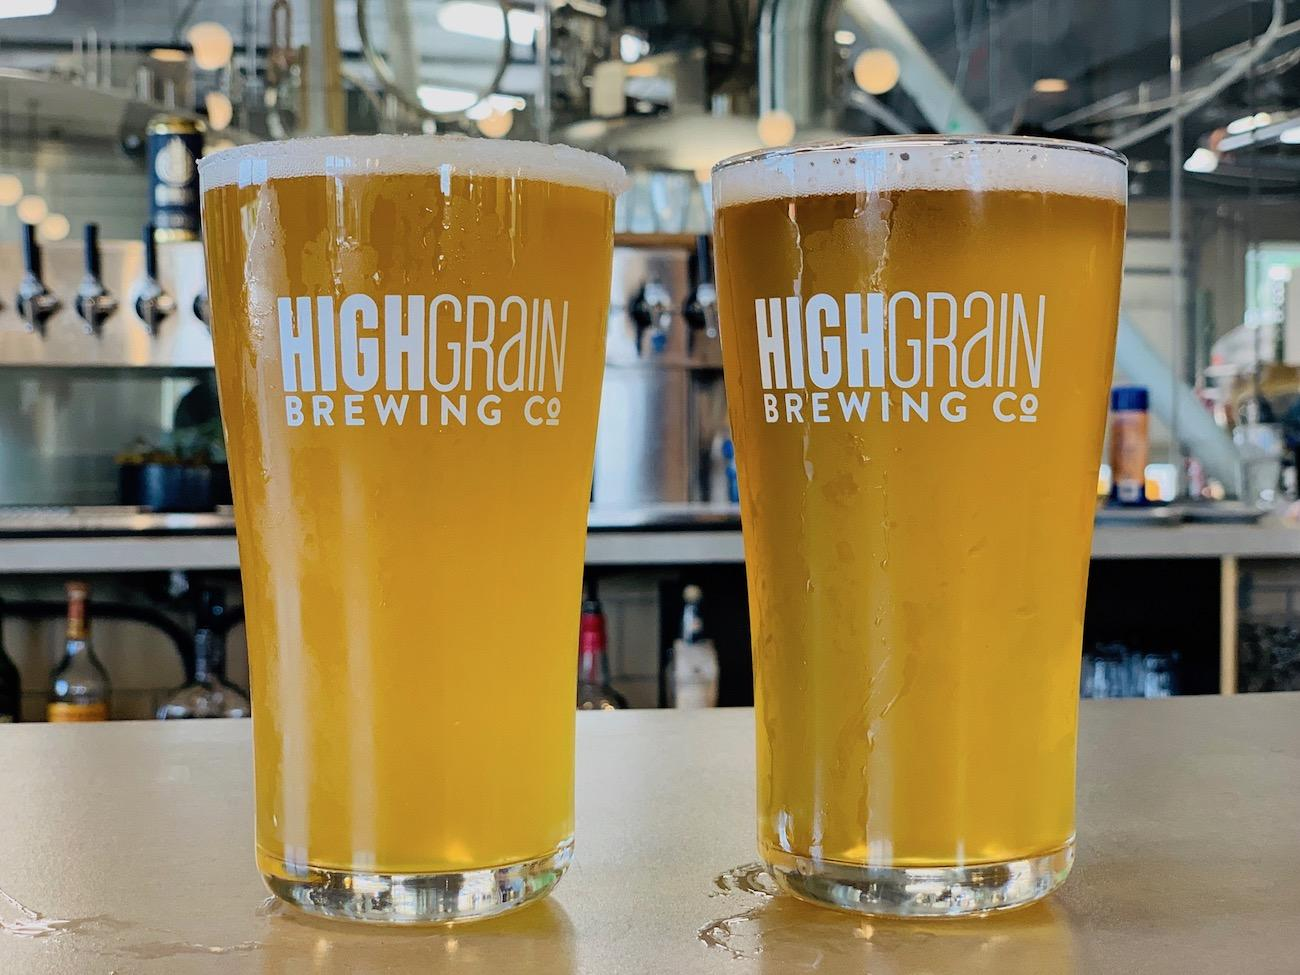 The brewpub offers some 17 original beers on tap, as well as a selection of liquors and wines.{ }/ Image courtesy of HighGrain Brewing Company // Published: 7.16.19